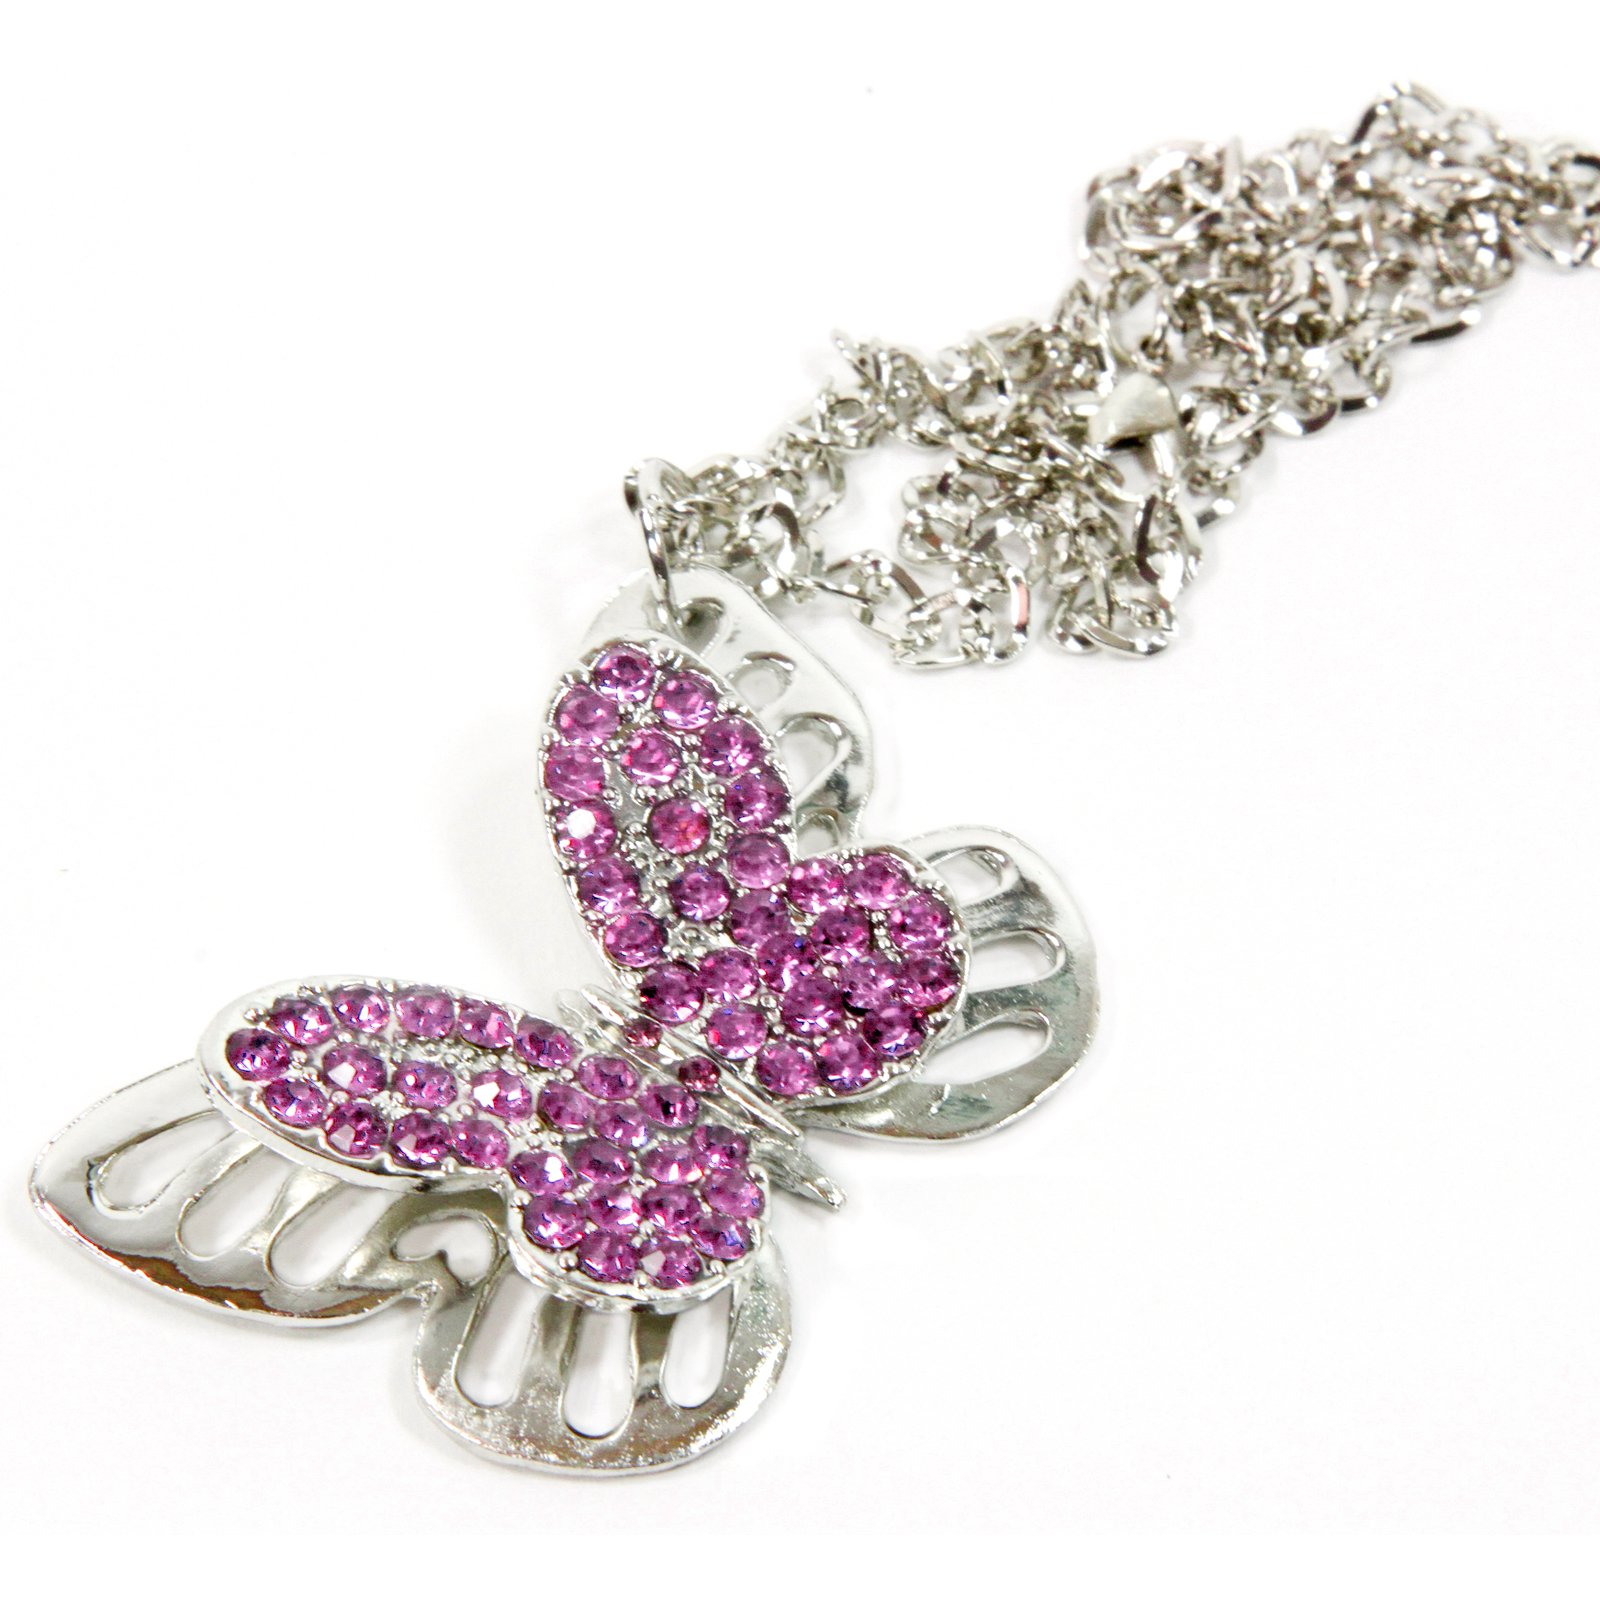 Red Hound Auto Silver Bling Butterfly Mirror Car Charm Hanger Ornament Pink Rhinestones with Chain